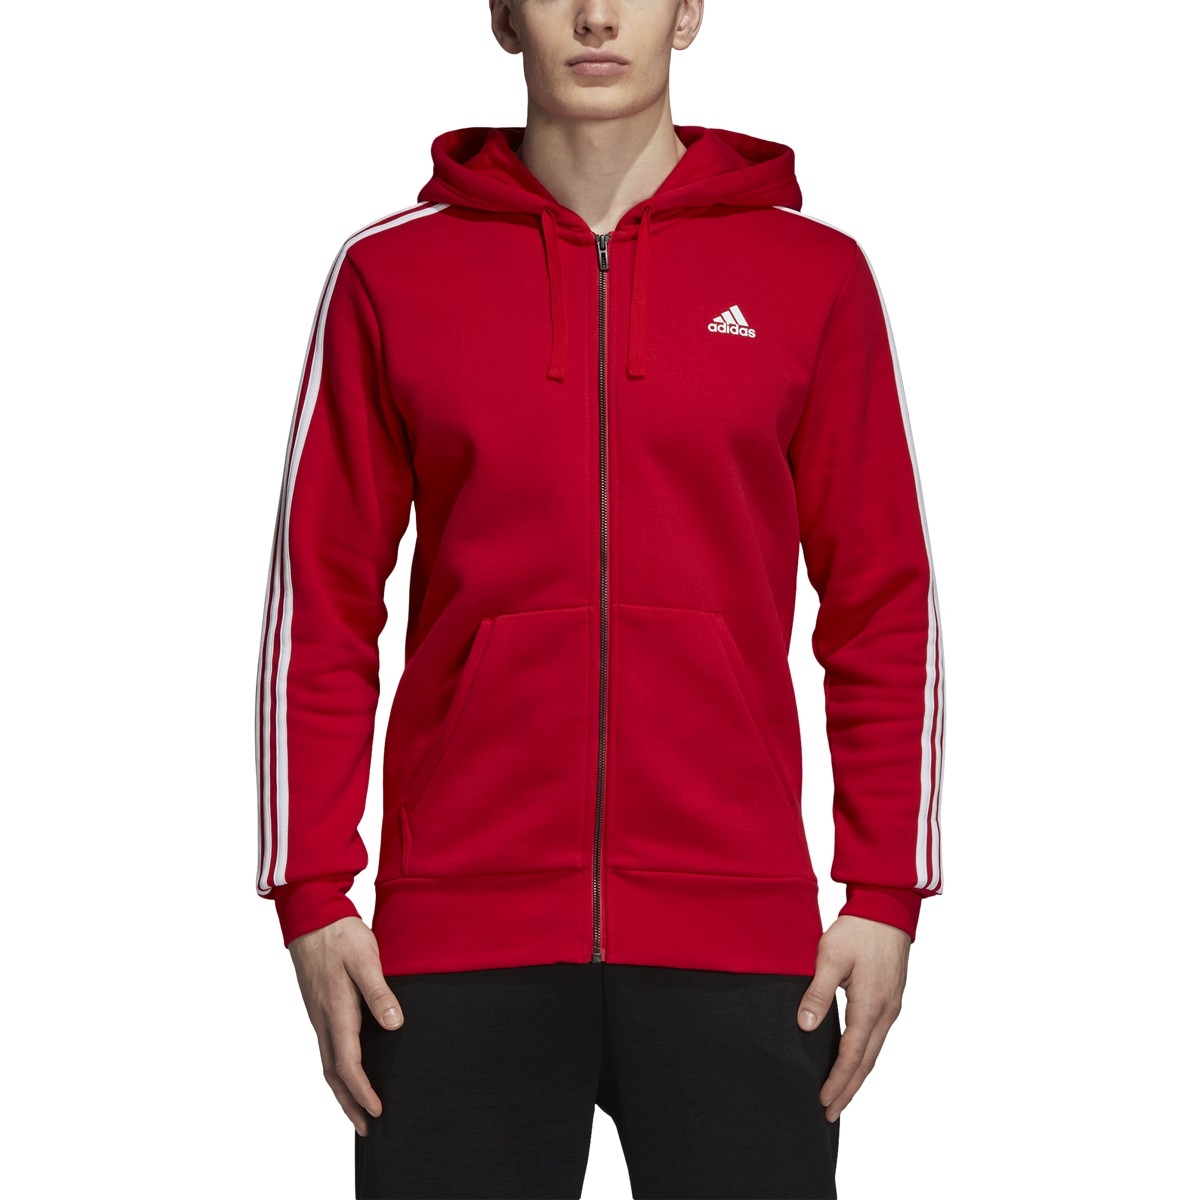 adidas Essentials 3 Stripes Fleece Full Zip Hooded